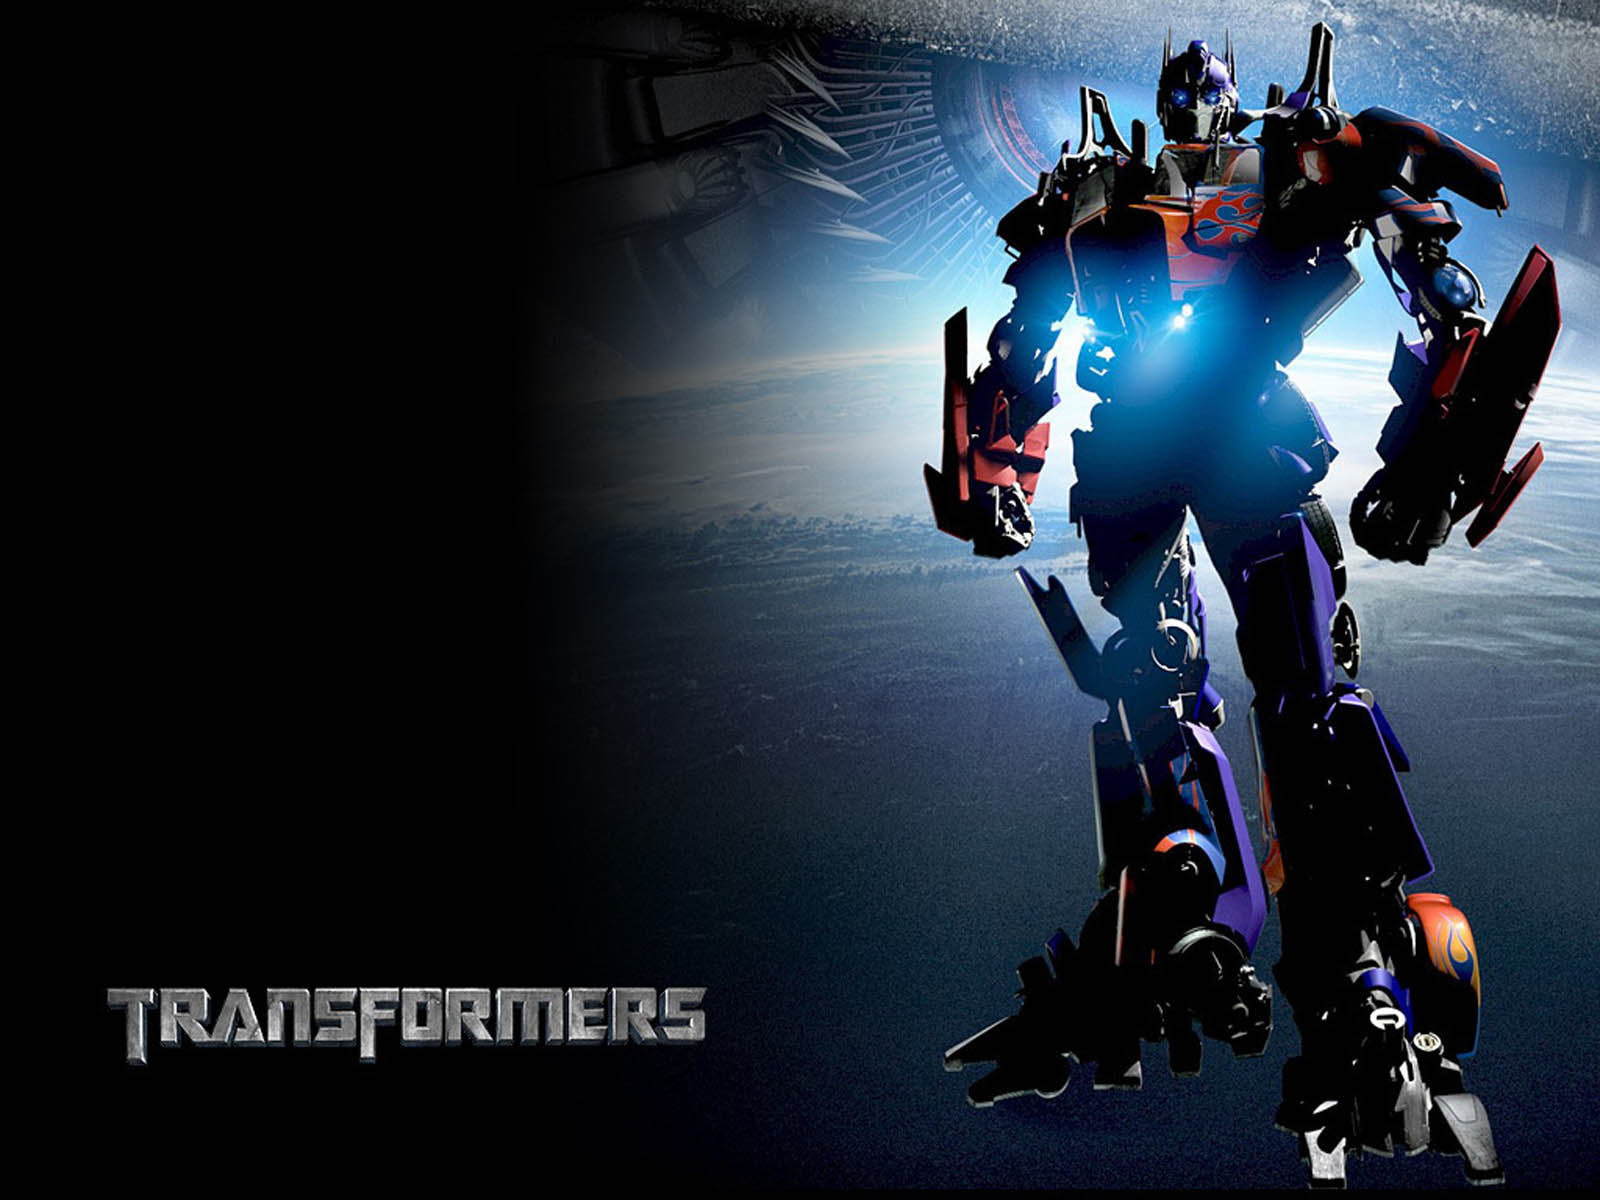 Tag Transformers Wallpapers Images Photos Pictures and Backgrounds 1600x1200